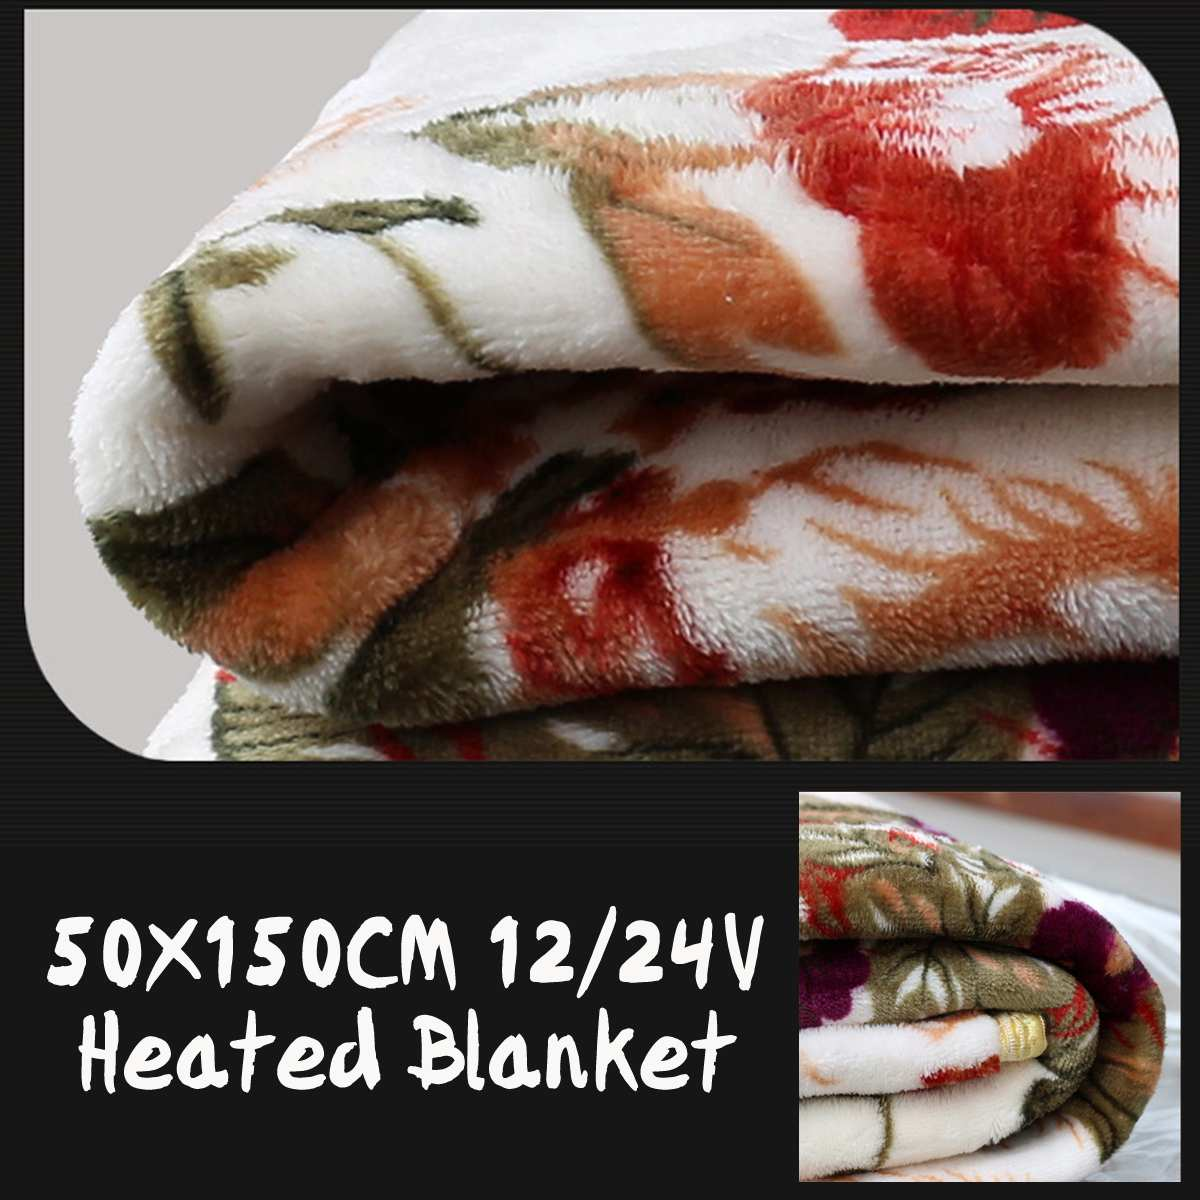 50x150cm Winter Heated 12V/24V Car Electrical Blanket New Energy Saving Warm Car Heating Blanket Constant Temperature